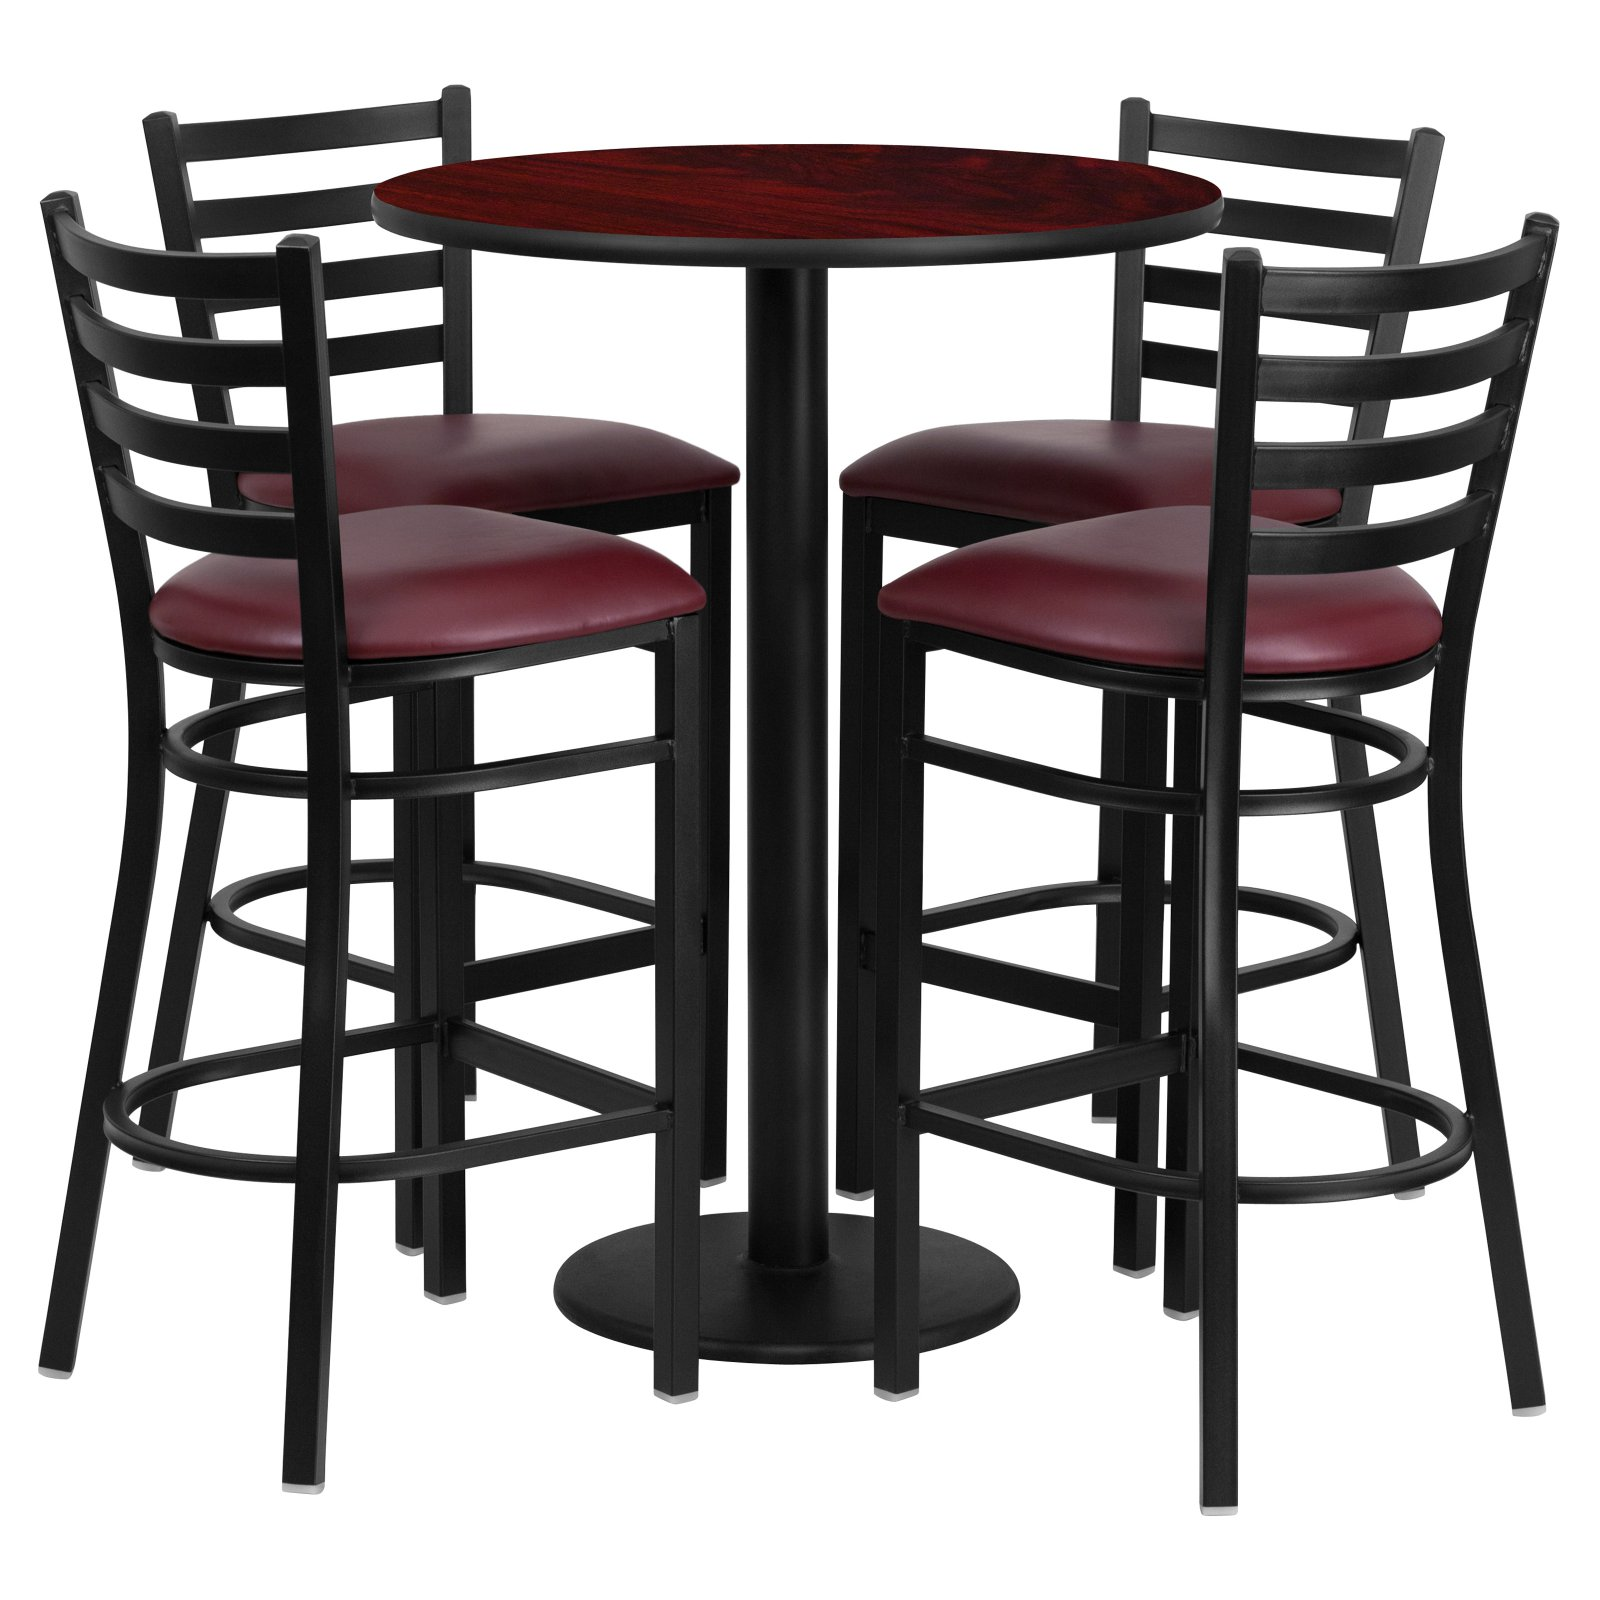 Flash Furniture 30'' Round Mahogany Laminate Table Set with 4 Ladder Back Metal Barstools, Burgundy Vinyl Seat